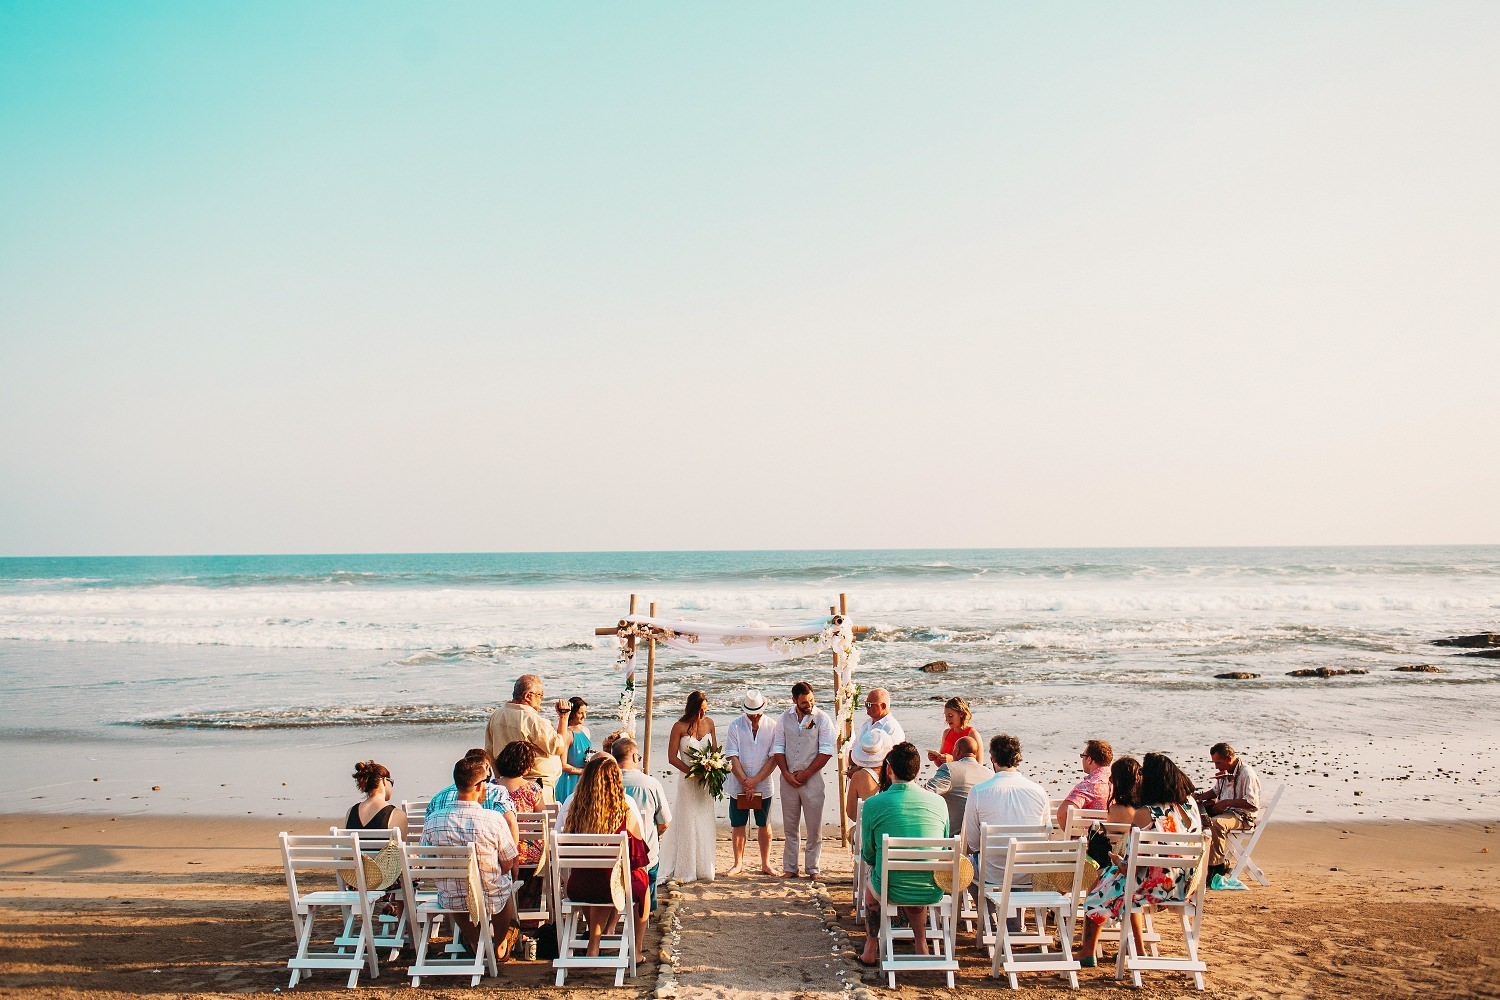 Beach wedding venue that took place in Popoyo, Nicaragua. Photography: Kuba Okon